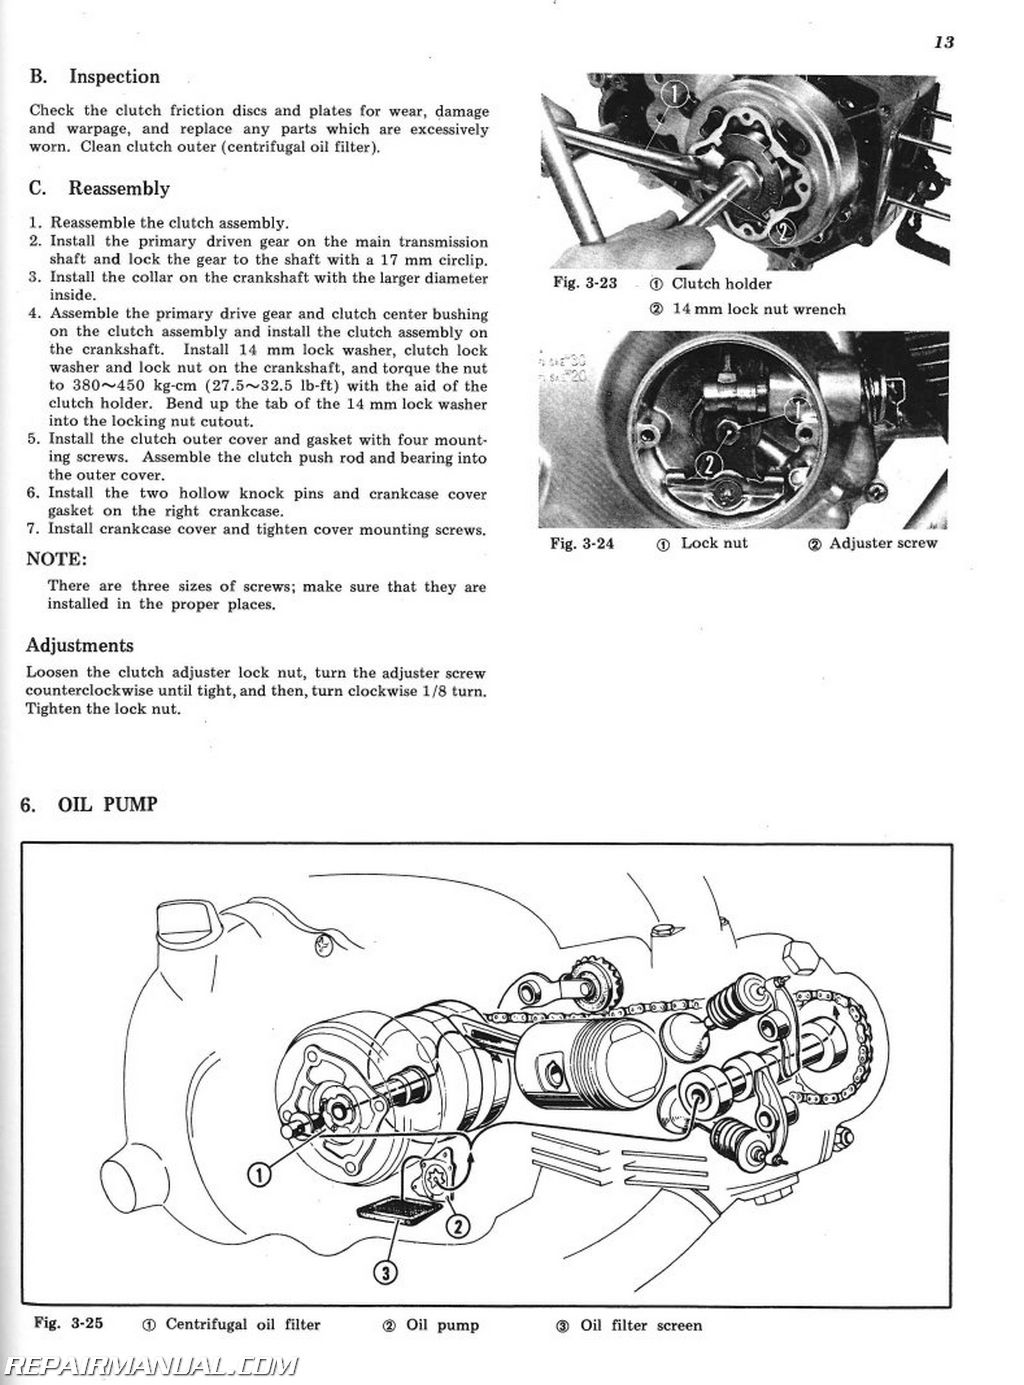 1971 1976 Honda Sl70 Xl70 Motorcycle Service Manual Razor Mx 650 Wiring Diagram